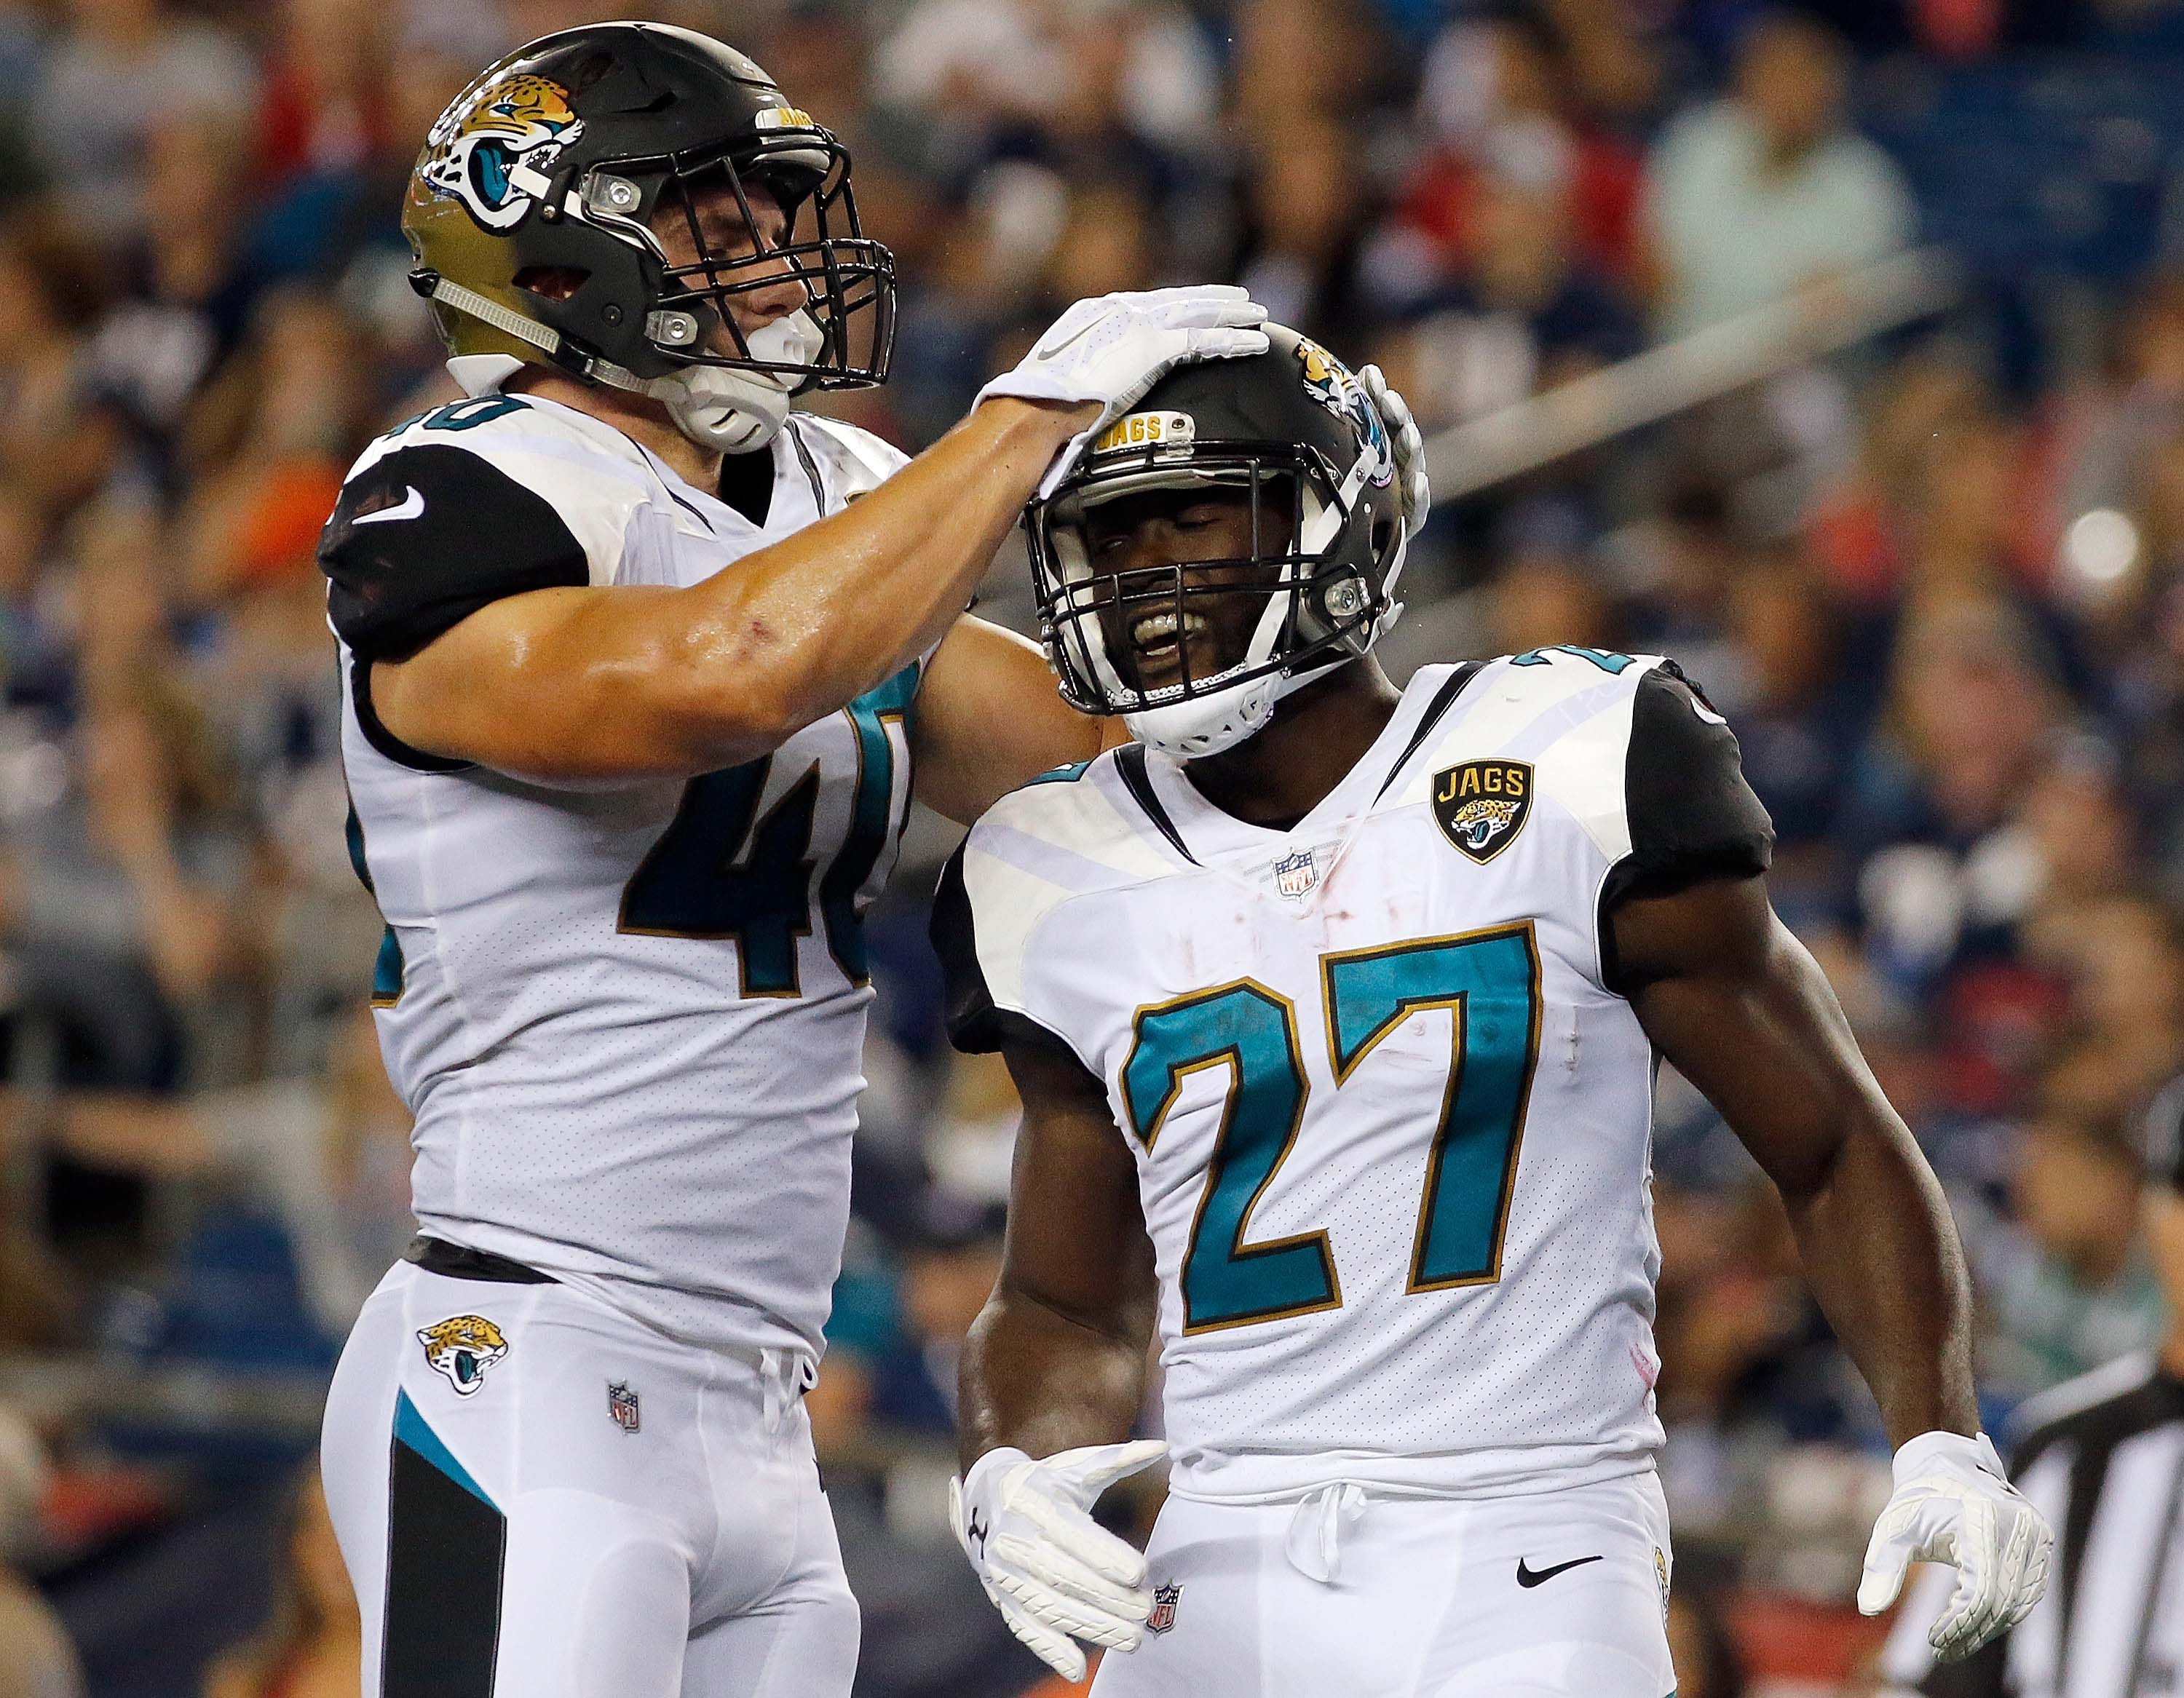 After one preseason game, Jaguars rookie Leonard Fournette thinks National Football League is 'easy'